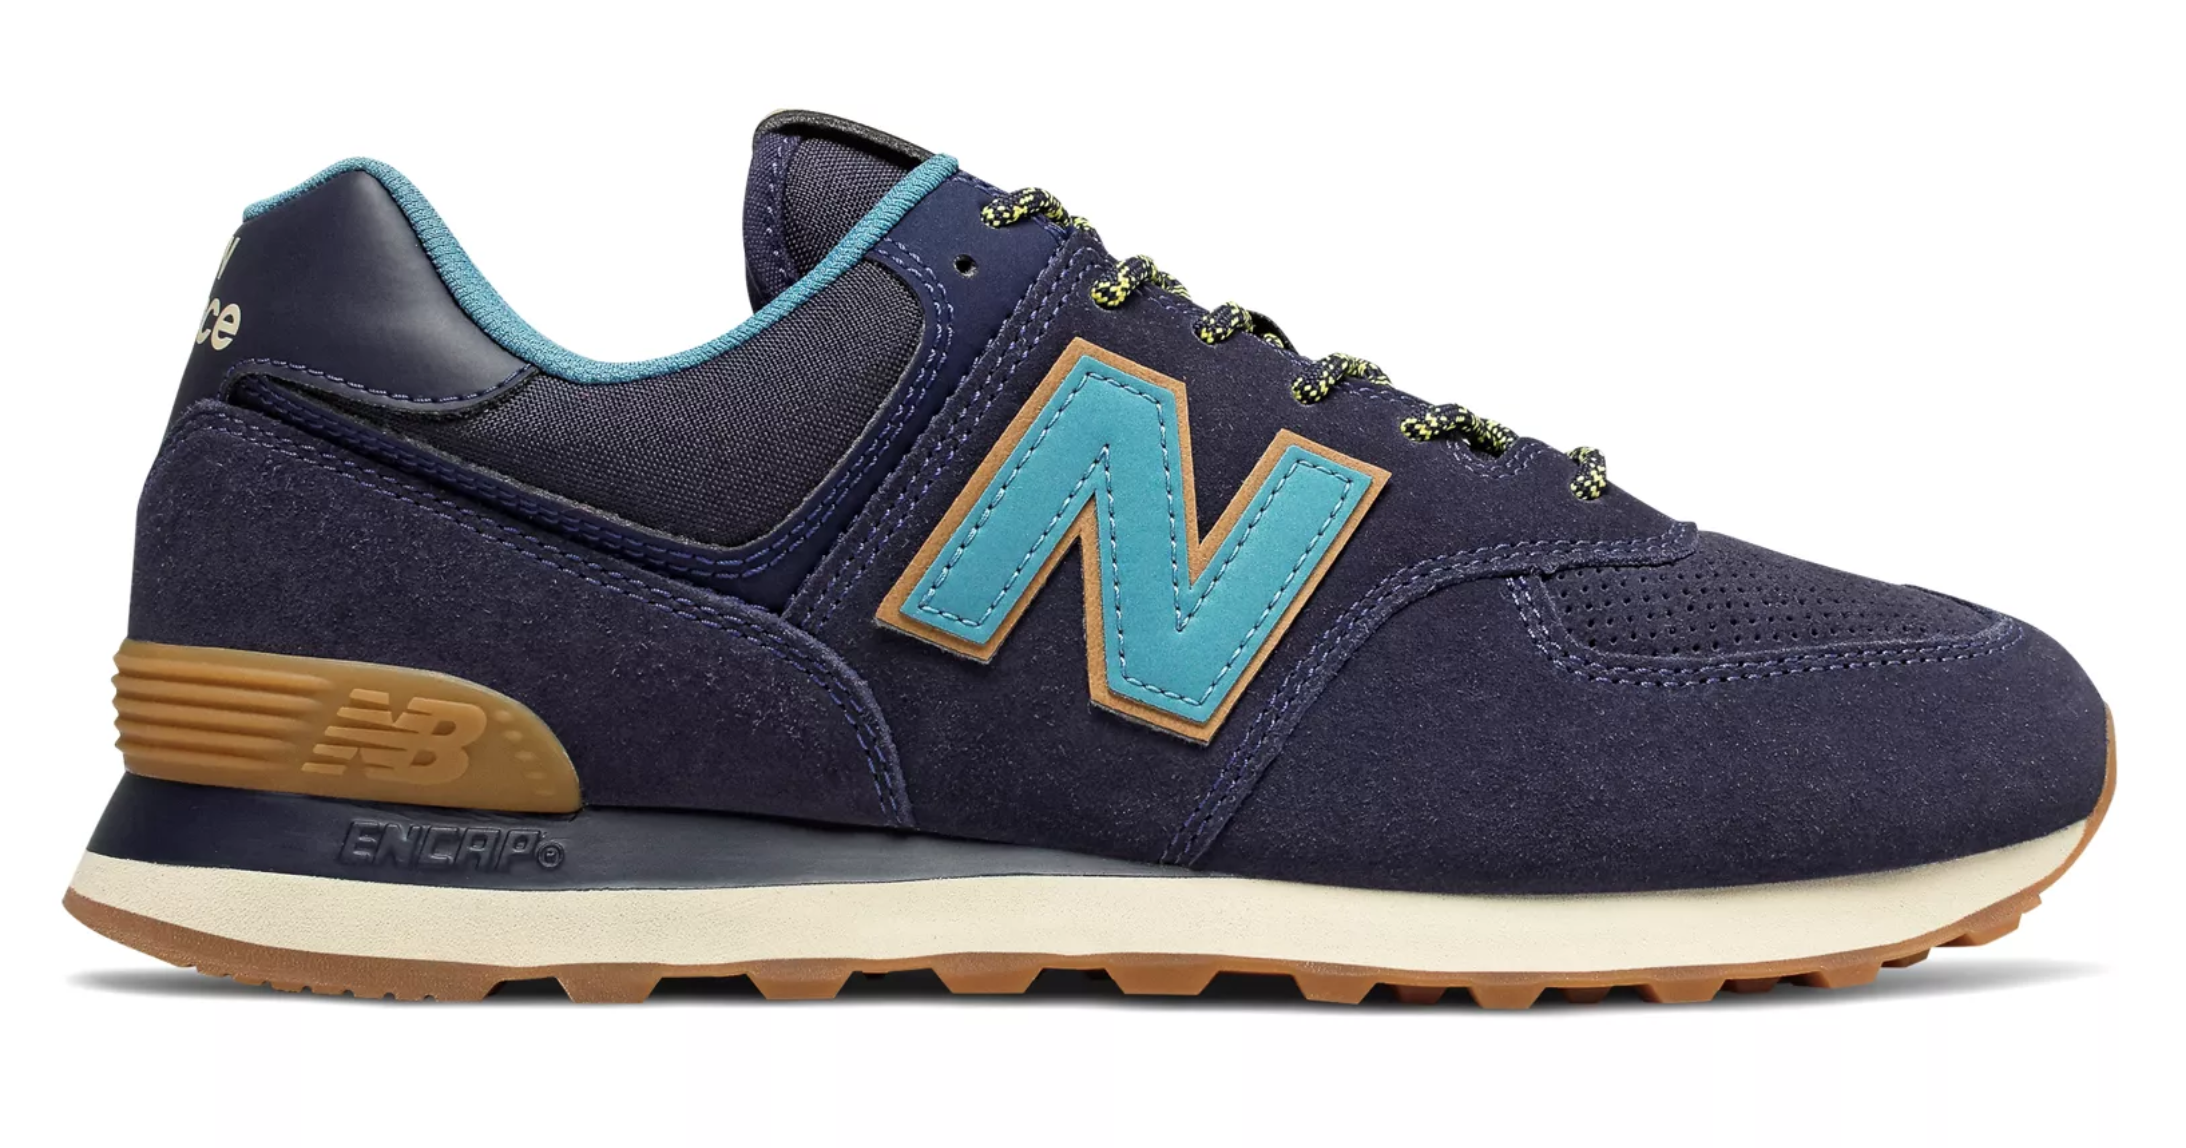 new concept da26f 2c97f New Balance 574 Shoes - Latest Styles and Best Deals